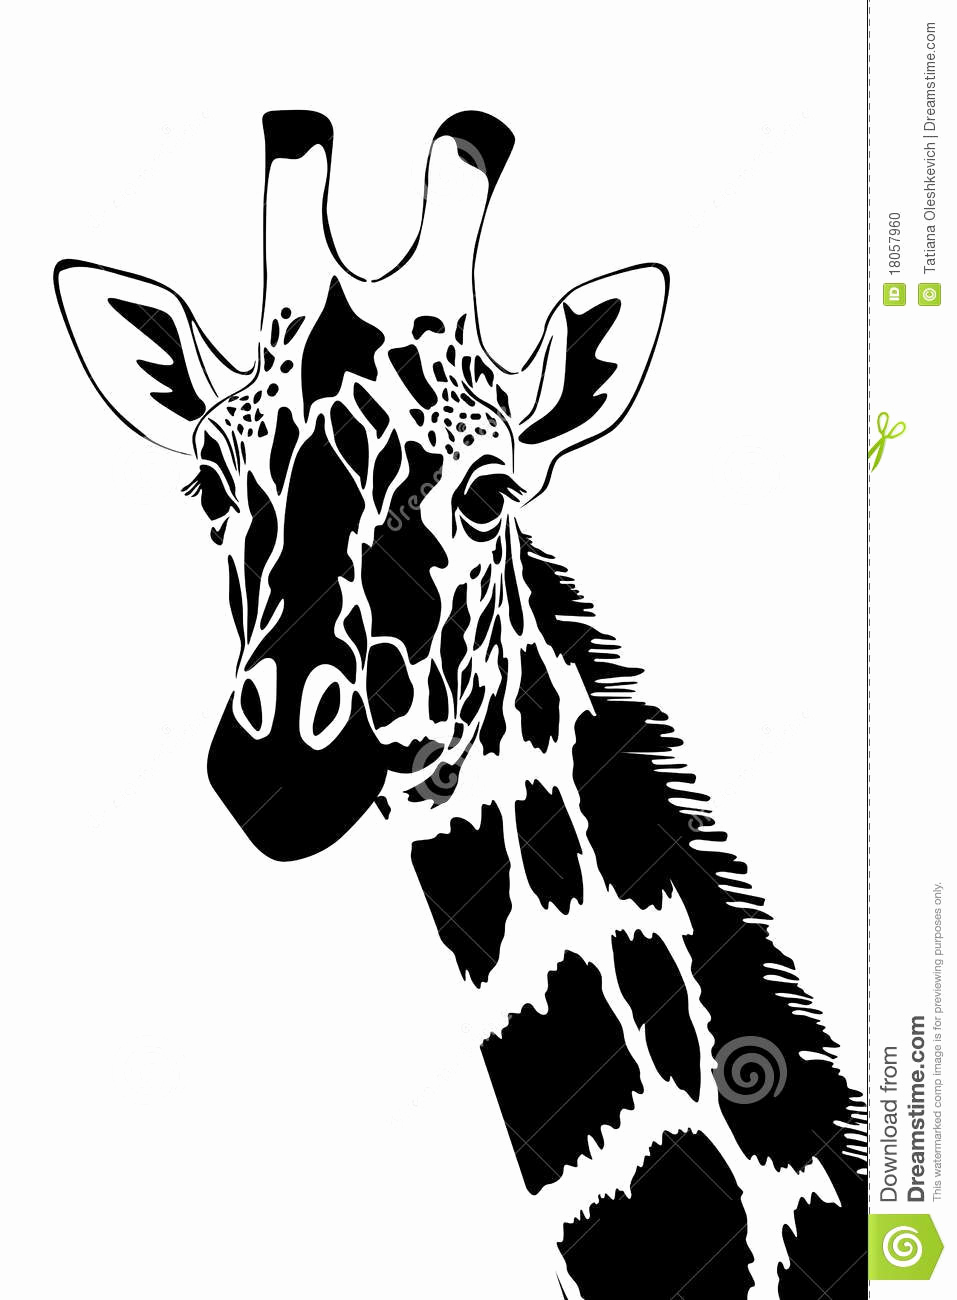 Black and White Illustration Fresh Giraffe In Black and White Stock Illustration